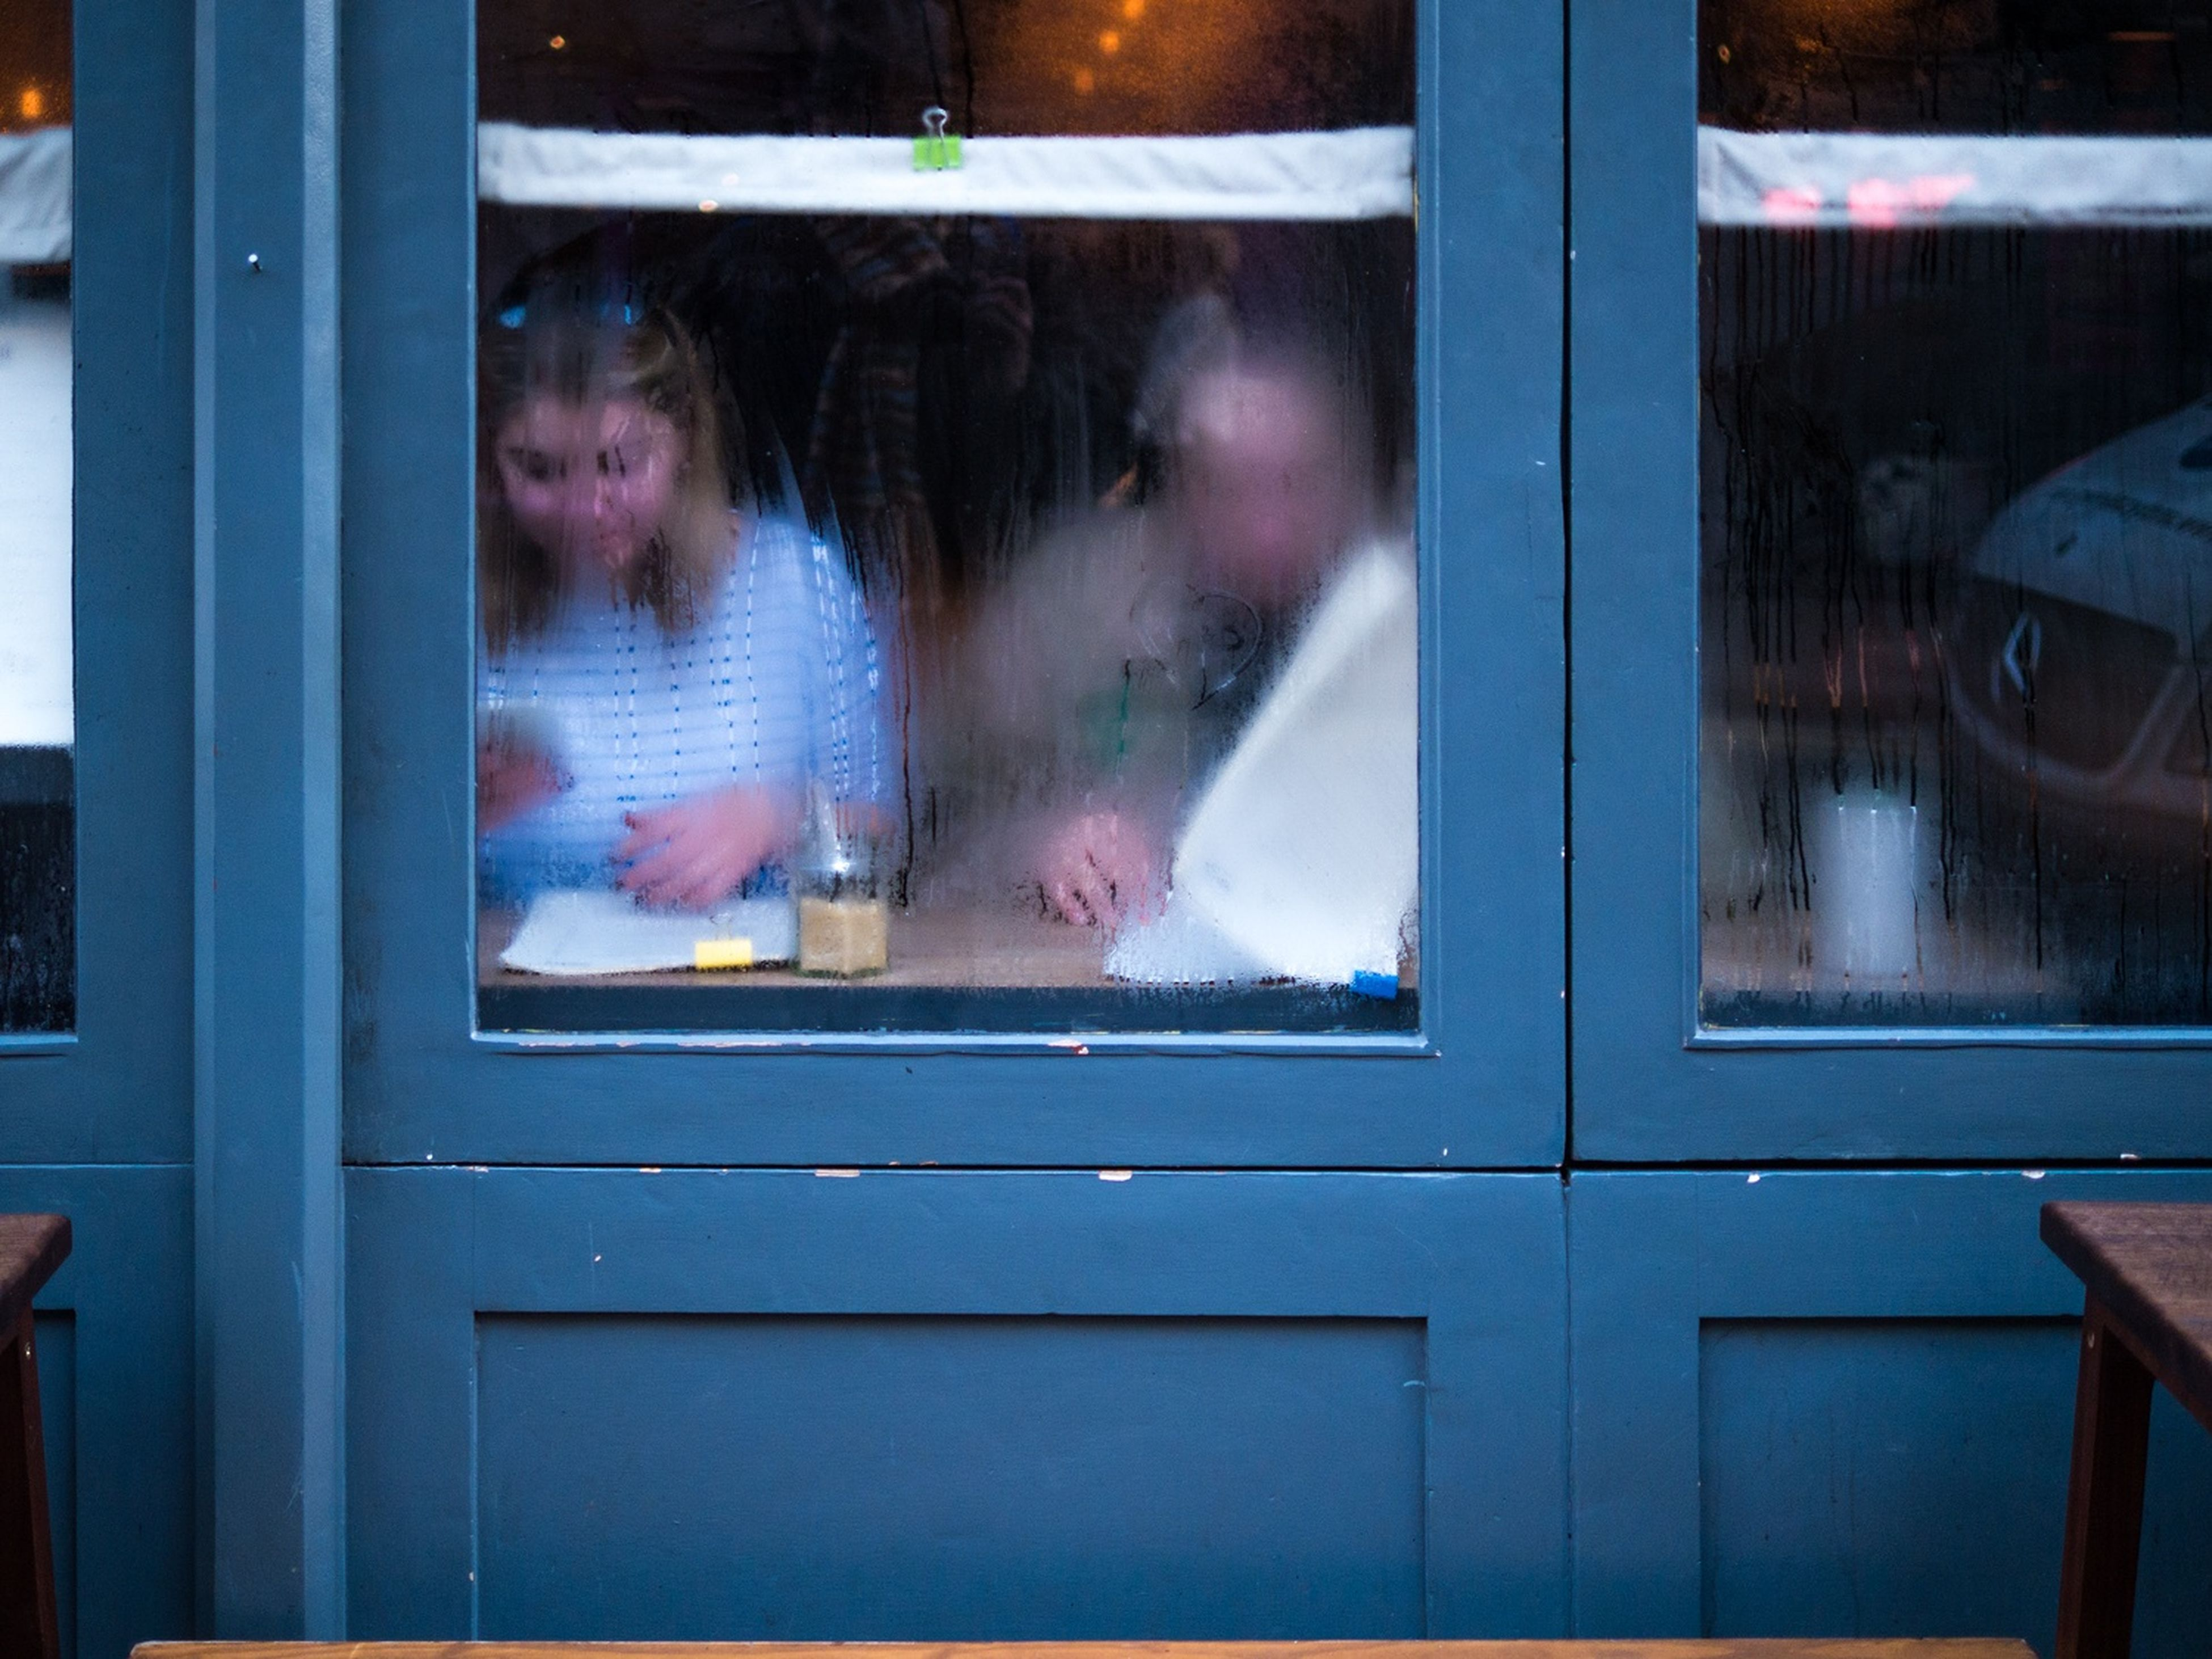 window, reflection, looking through window, two people, people, adult, real people, indoors, young women, adults only, day